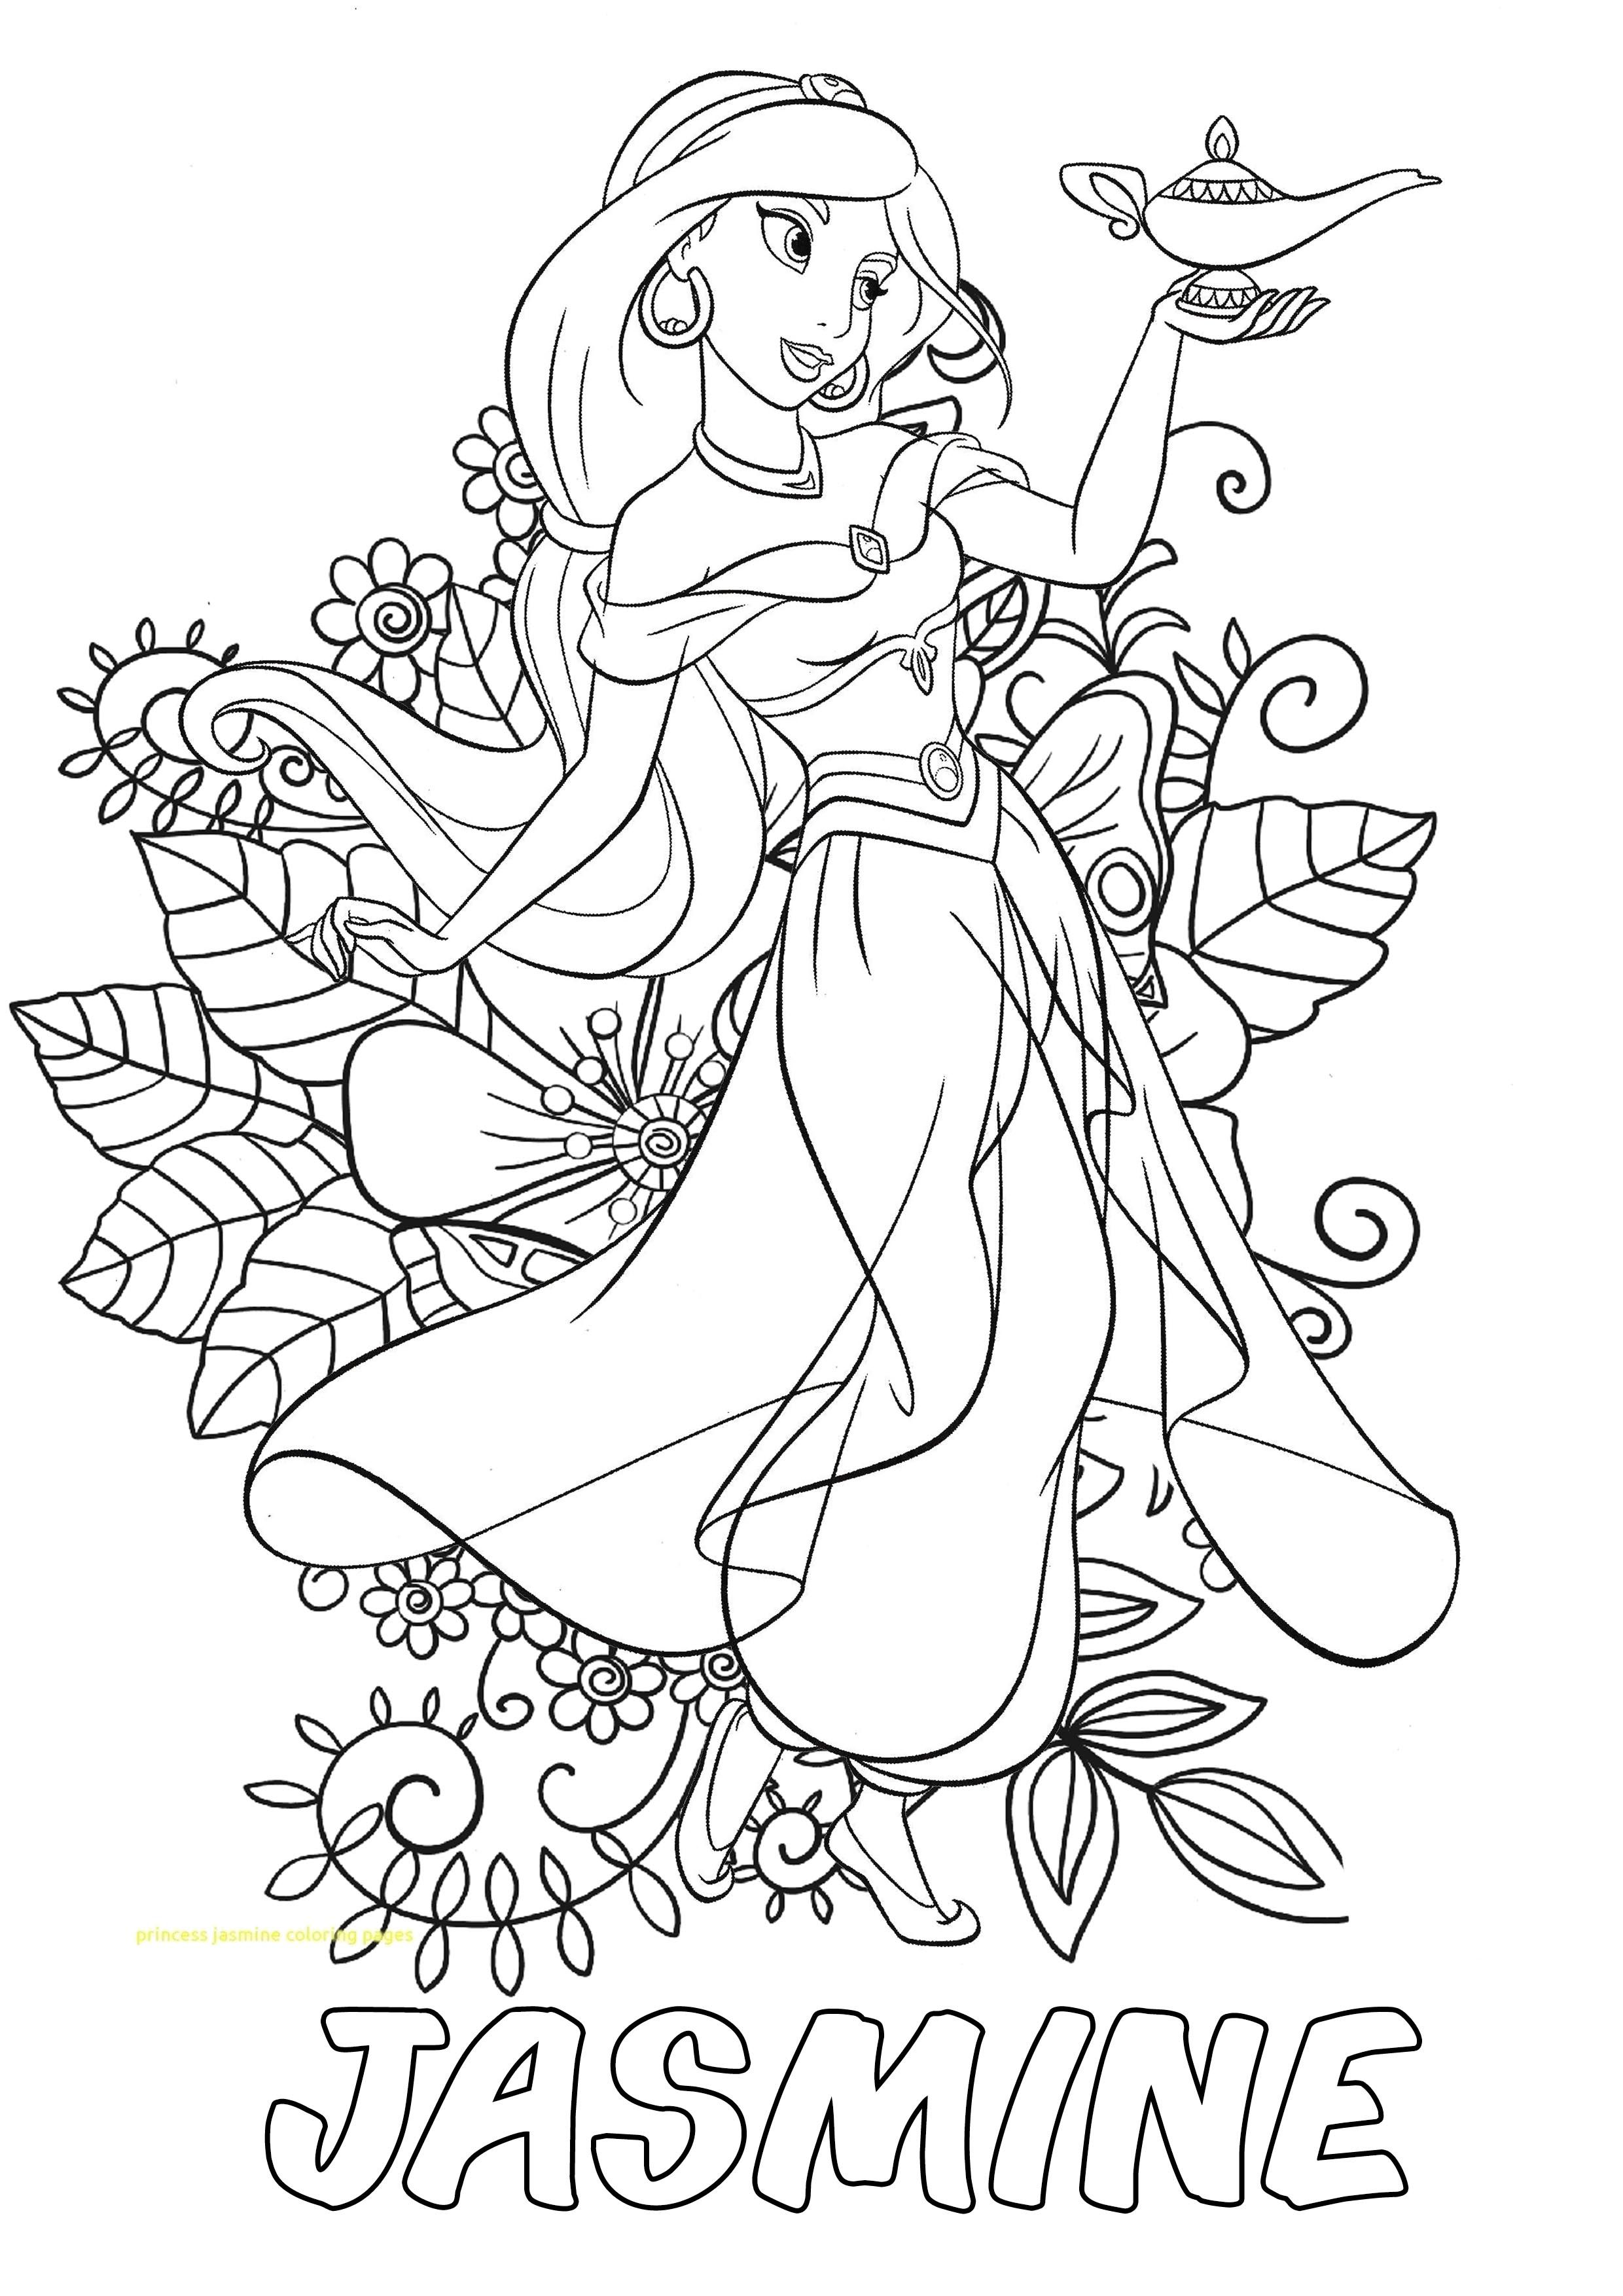 680 Hellokids Disney Coloring Pages  Images